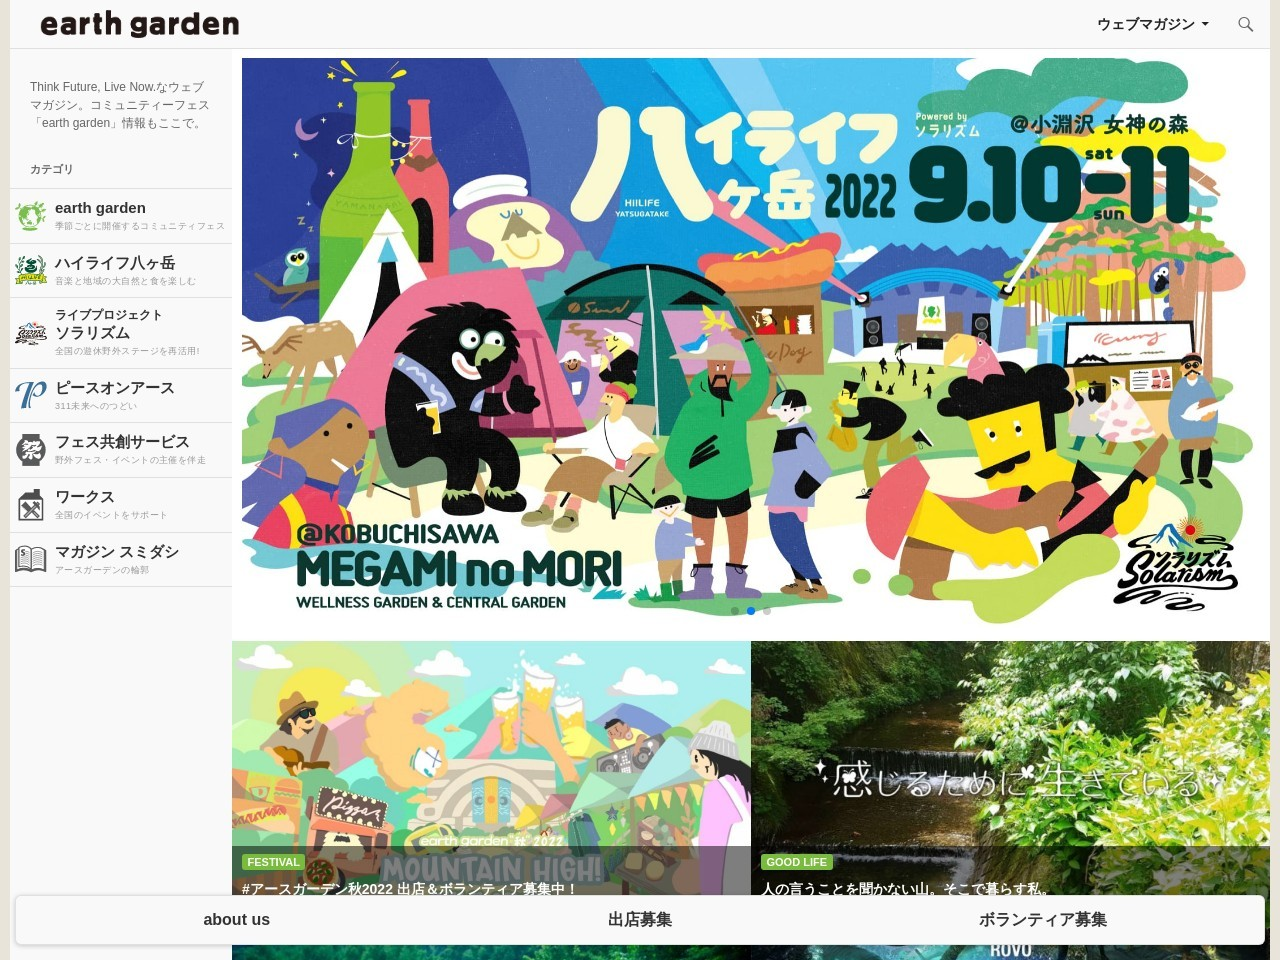 http://www.earth-garden.jp/event/eg-2016-winter/